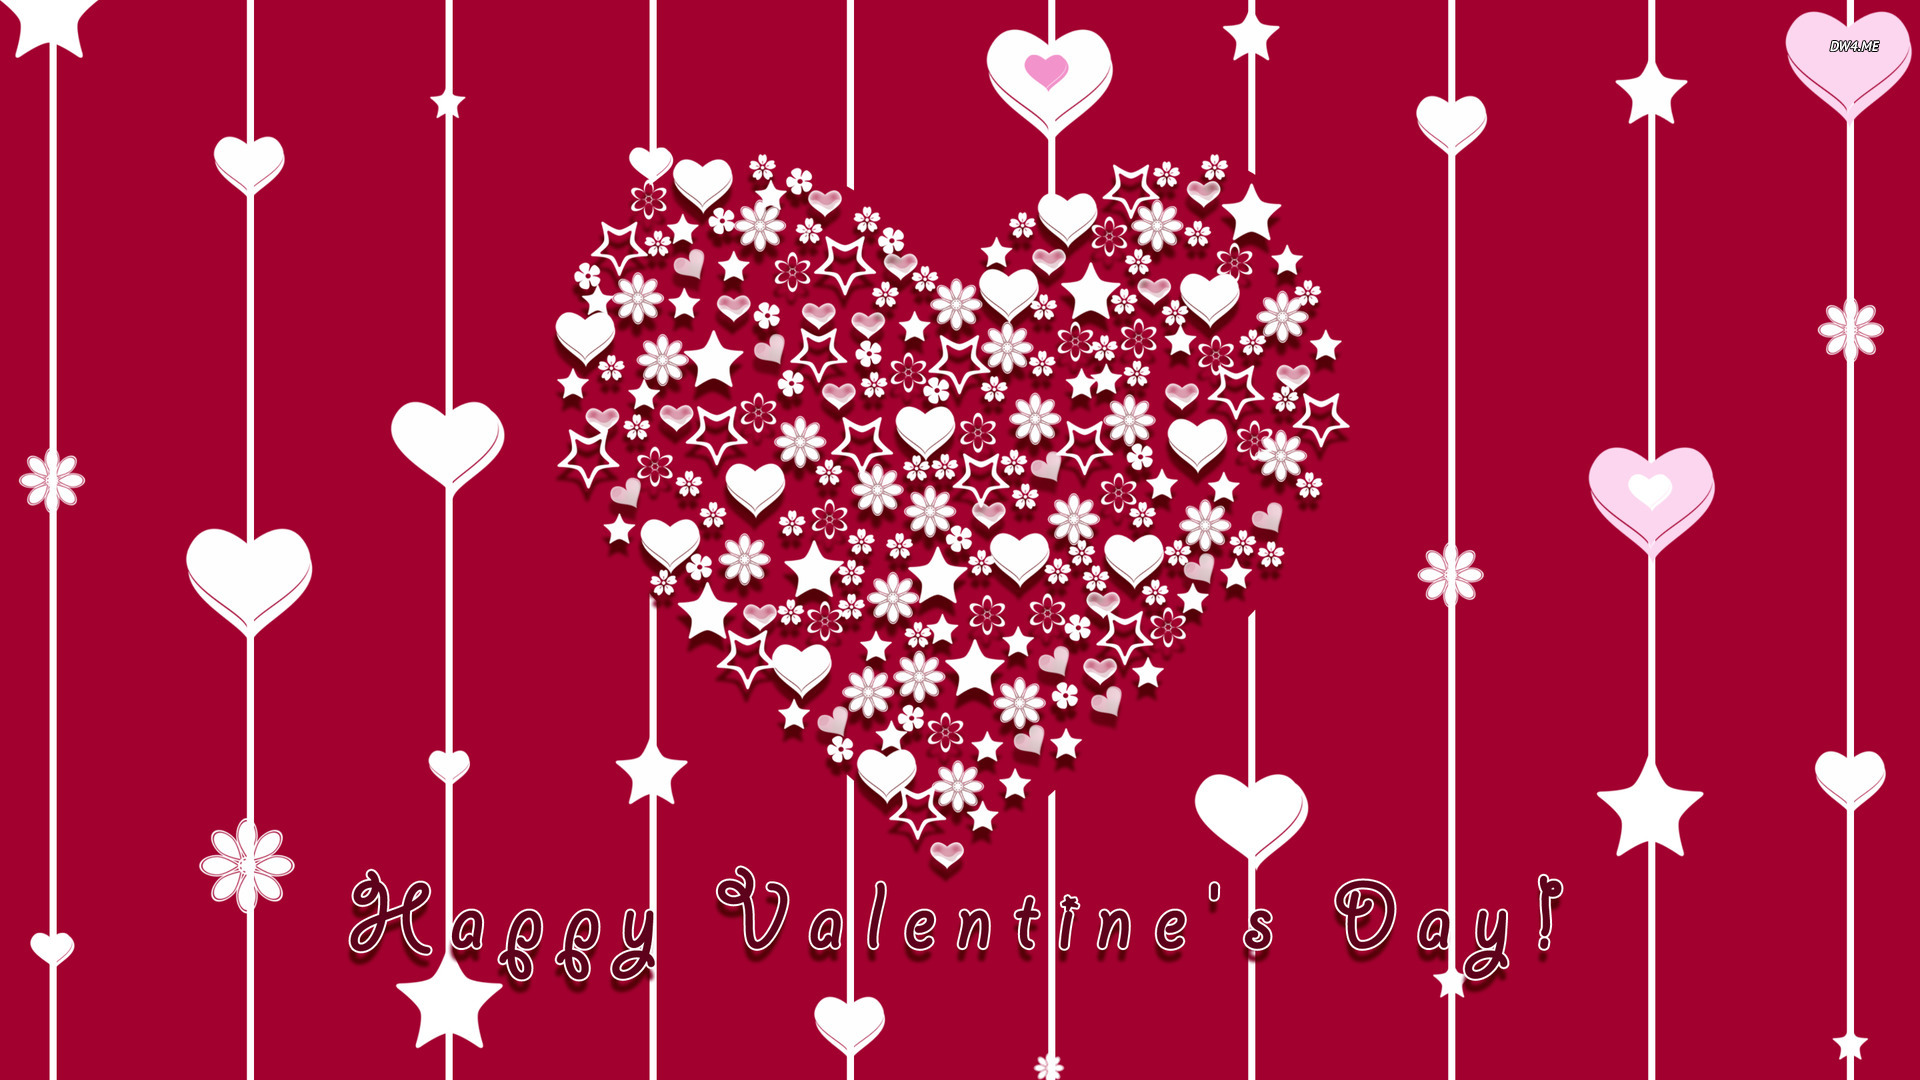 download Happy Valentines Day HD Wallpapers Wallpaper High 1920x1080